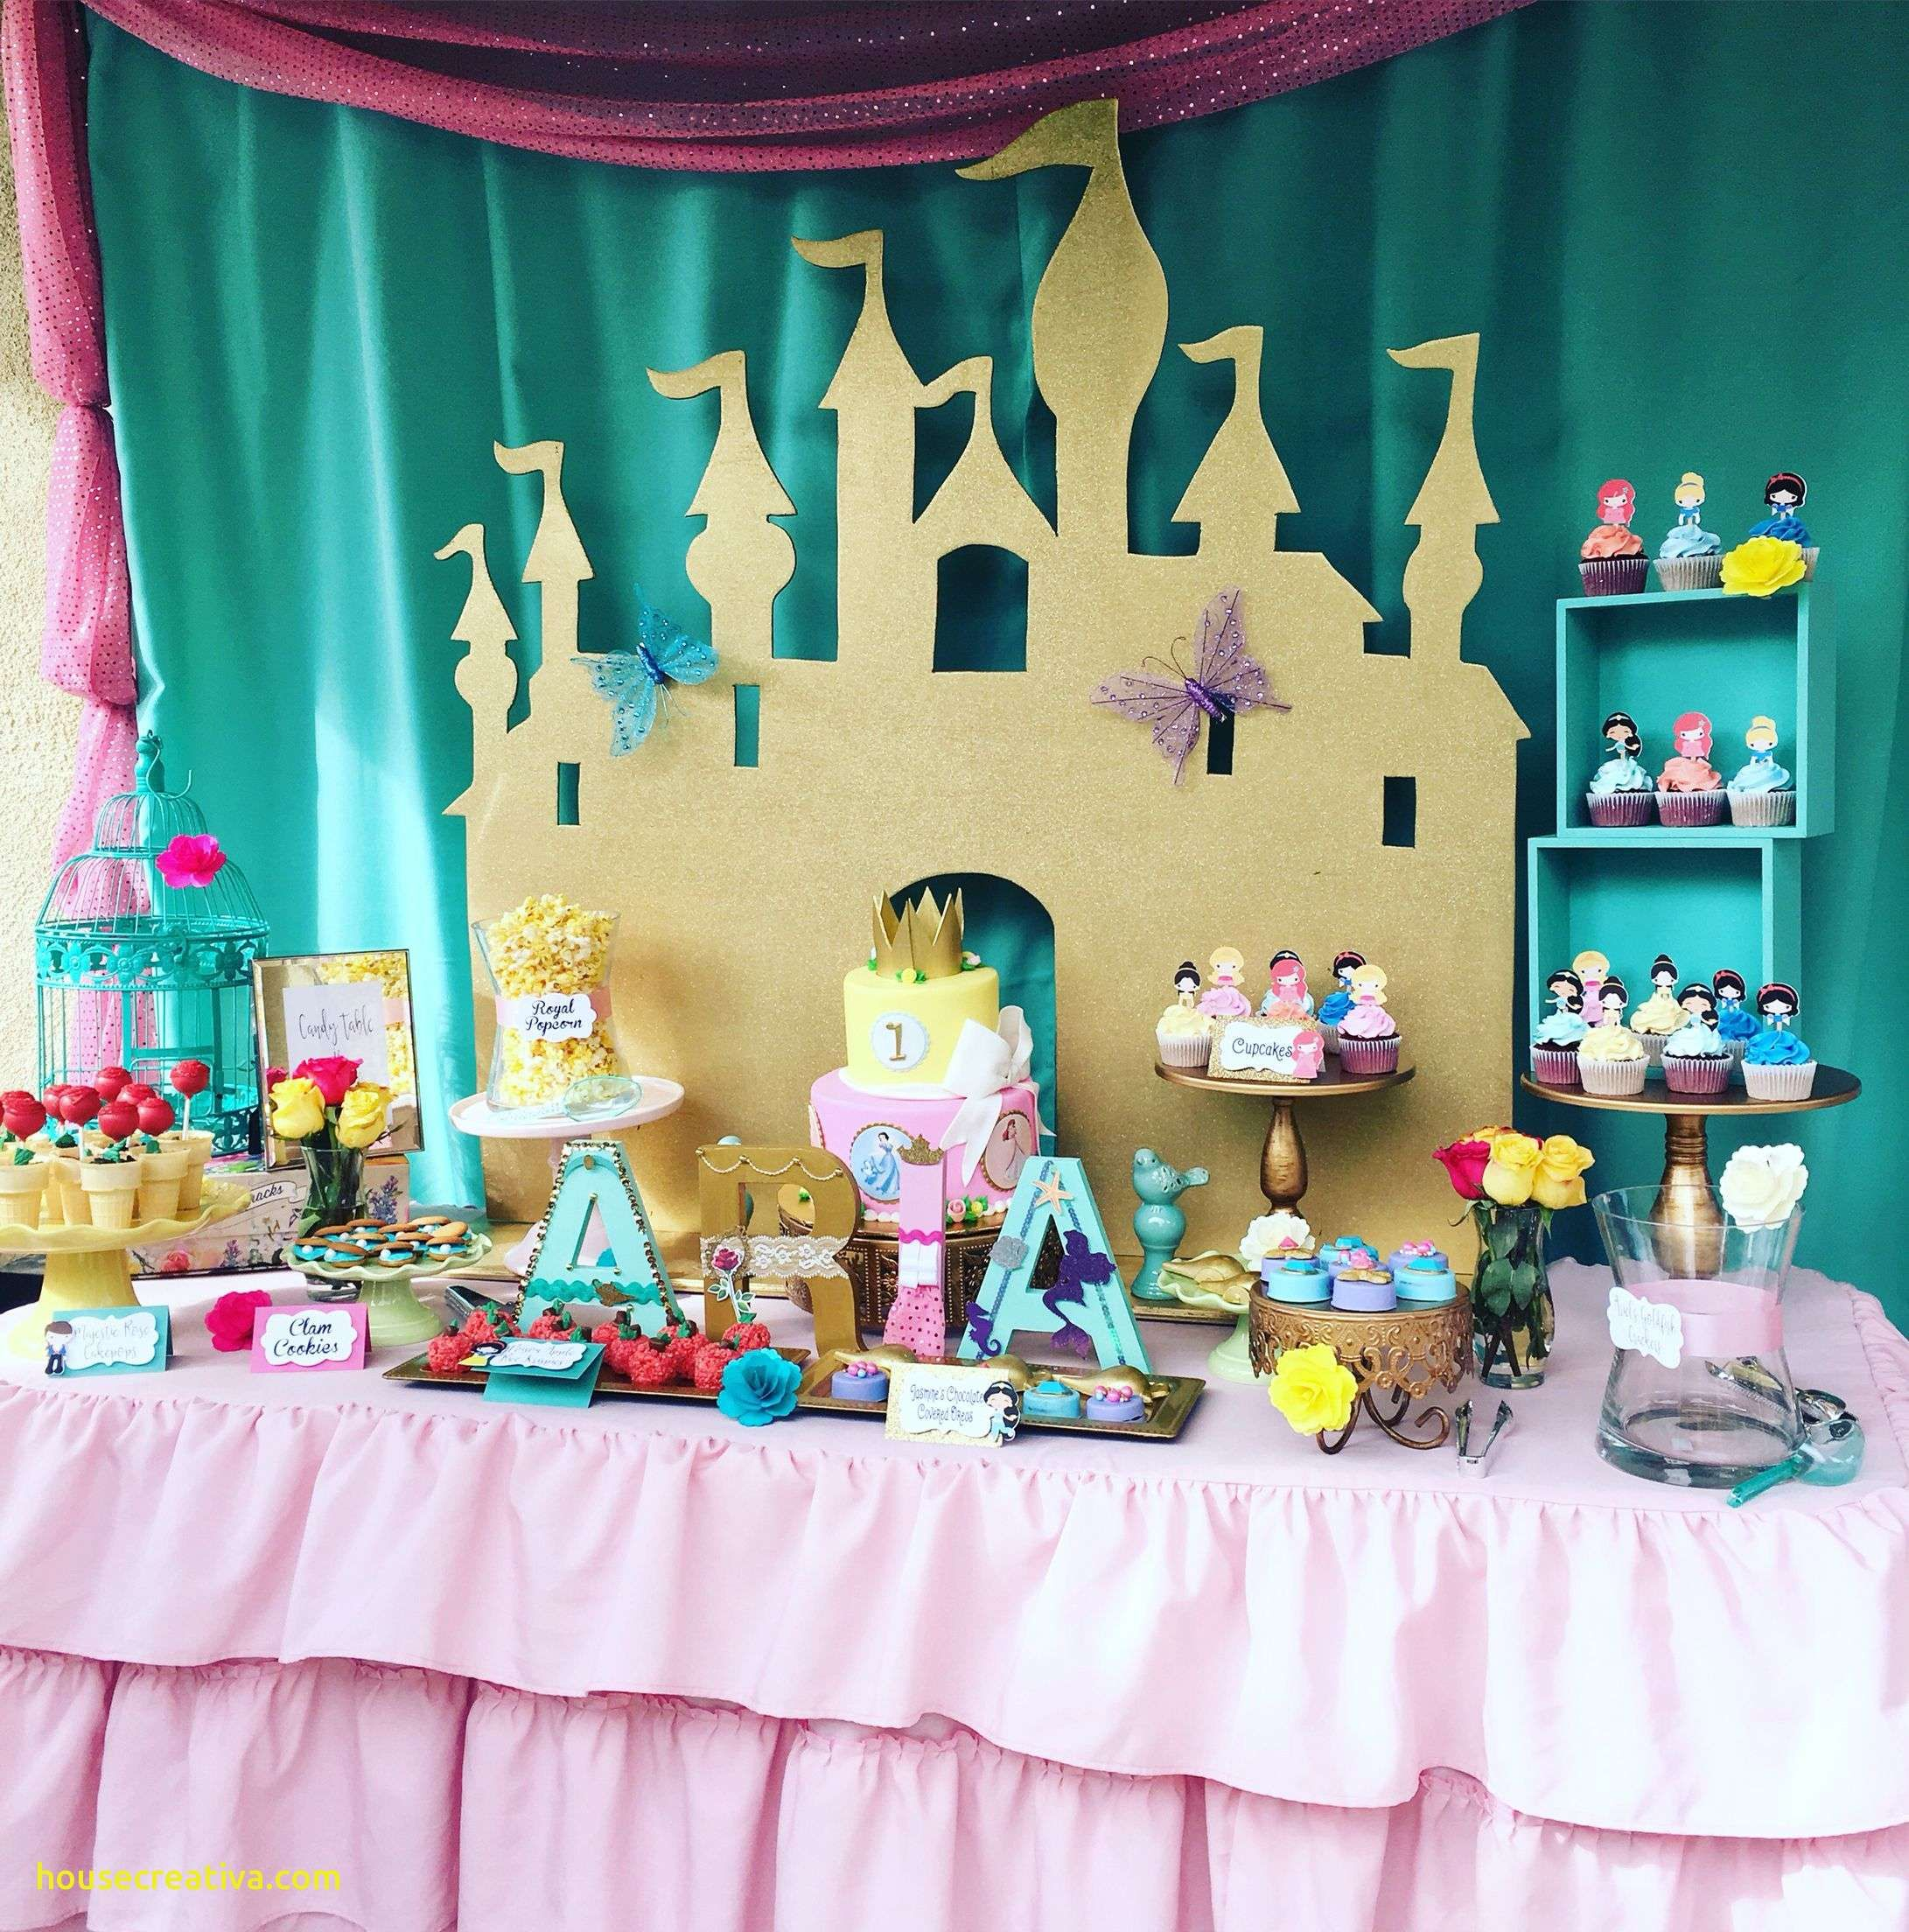 Beautiful Cinderella Themed Birthday Party Decorations Homedecoration Princess Birthday Party Decorations Princess Theme Birthday Party Princess Theme Party